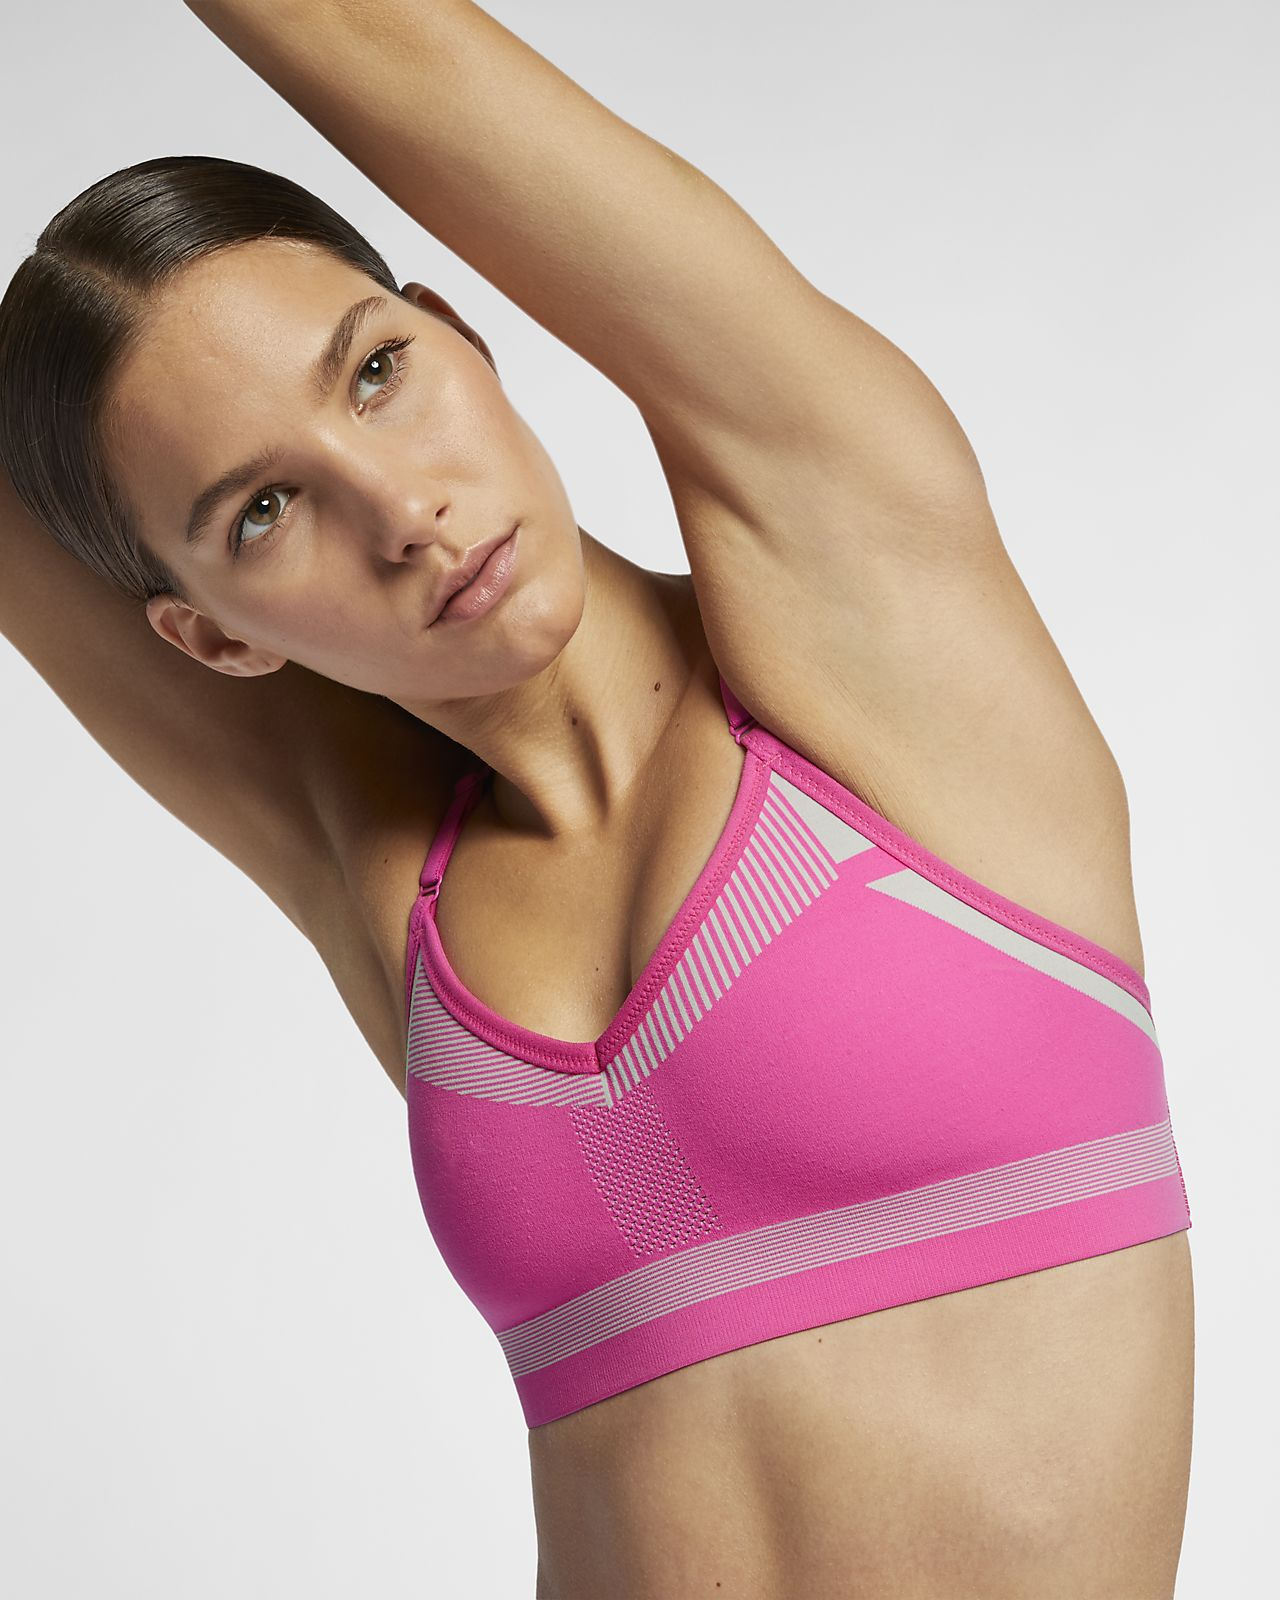 ac0f90200d4c4 Nike Flyknit Indy Women s Medium Support Sports Bra. Nike.com